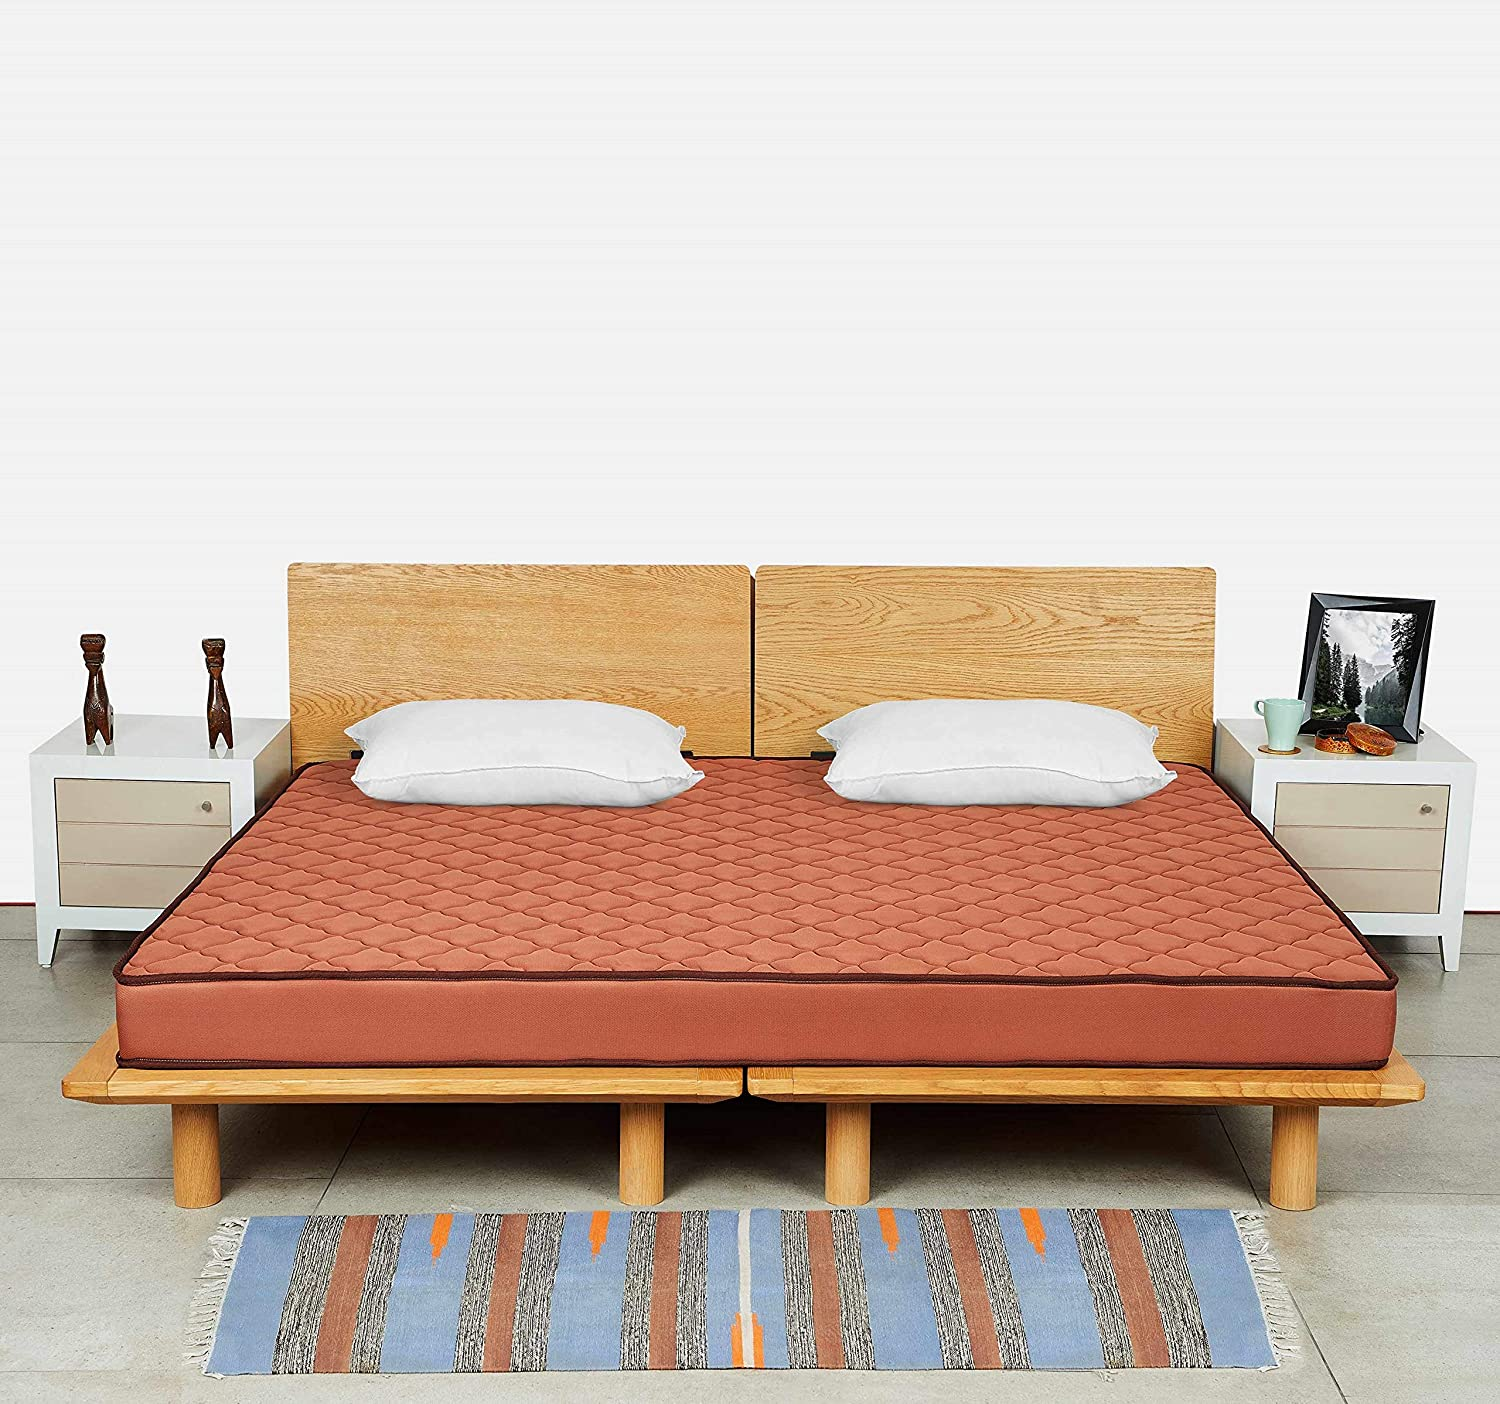 Sleepwell Mattress - Full Review, Best Offers and Buying Guide